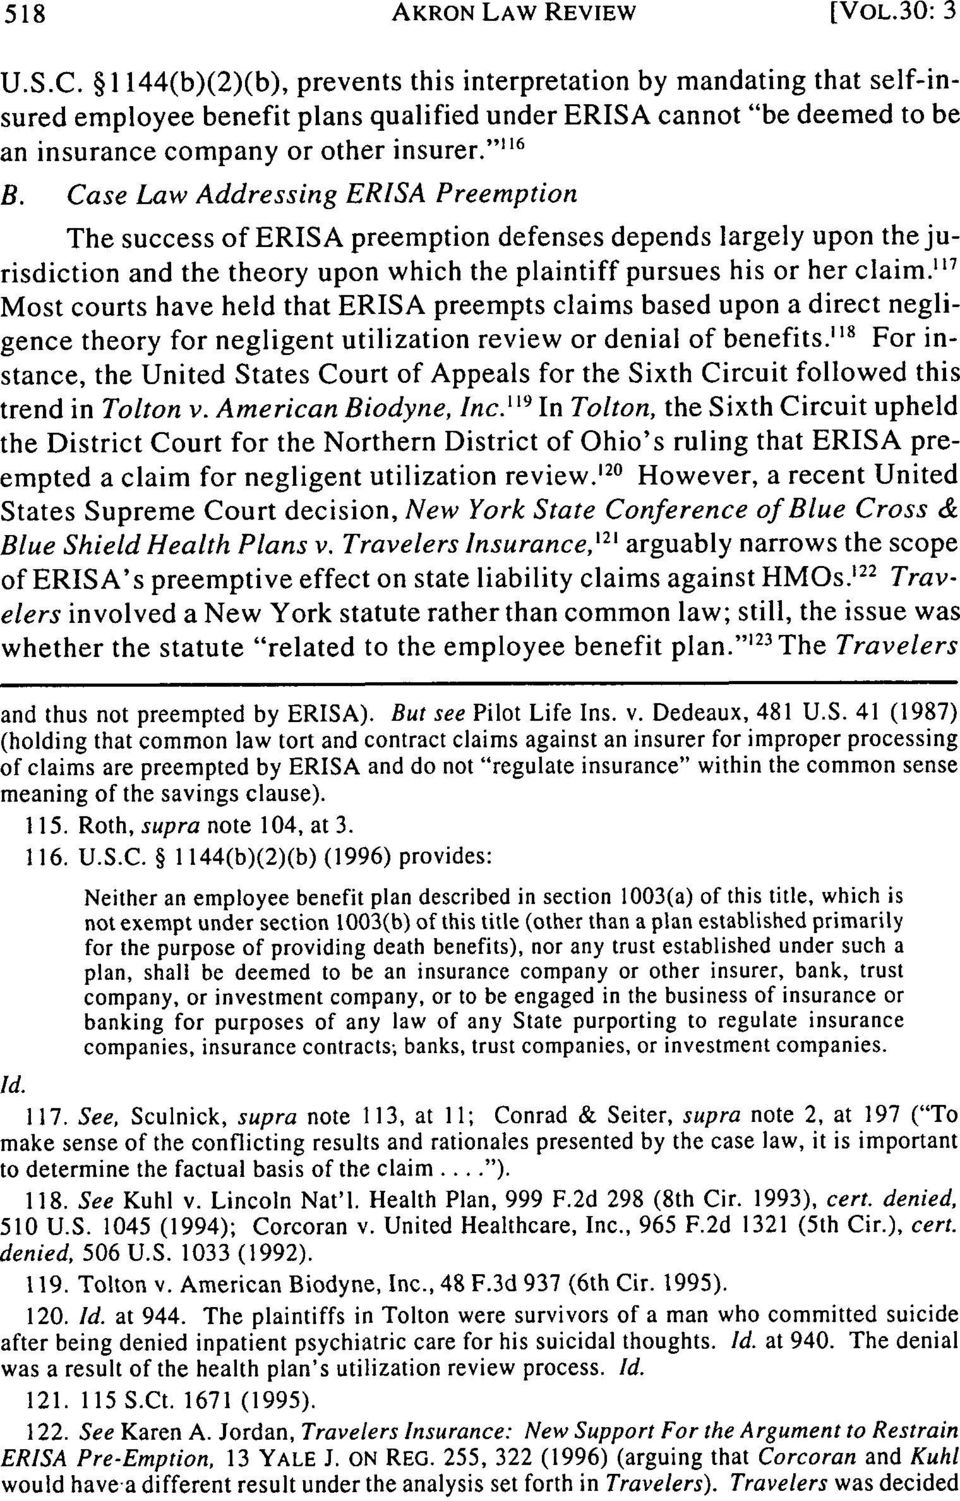 Case Law Addressing ERISA Preemption The success of ERISA preemption defenses depends largely upon the jurisdiction and the theory upon which the plaintiff pursues his or her claim.